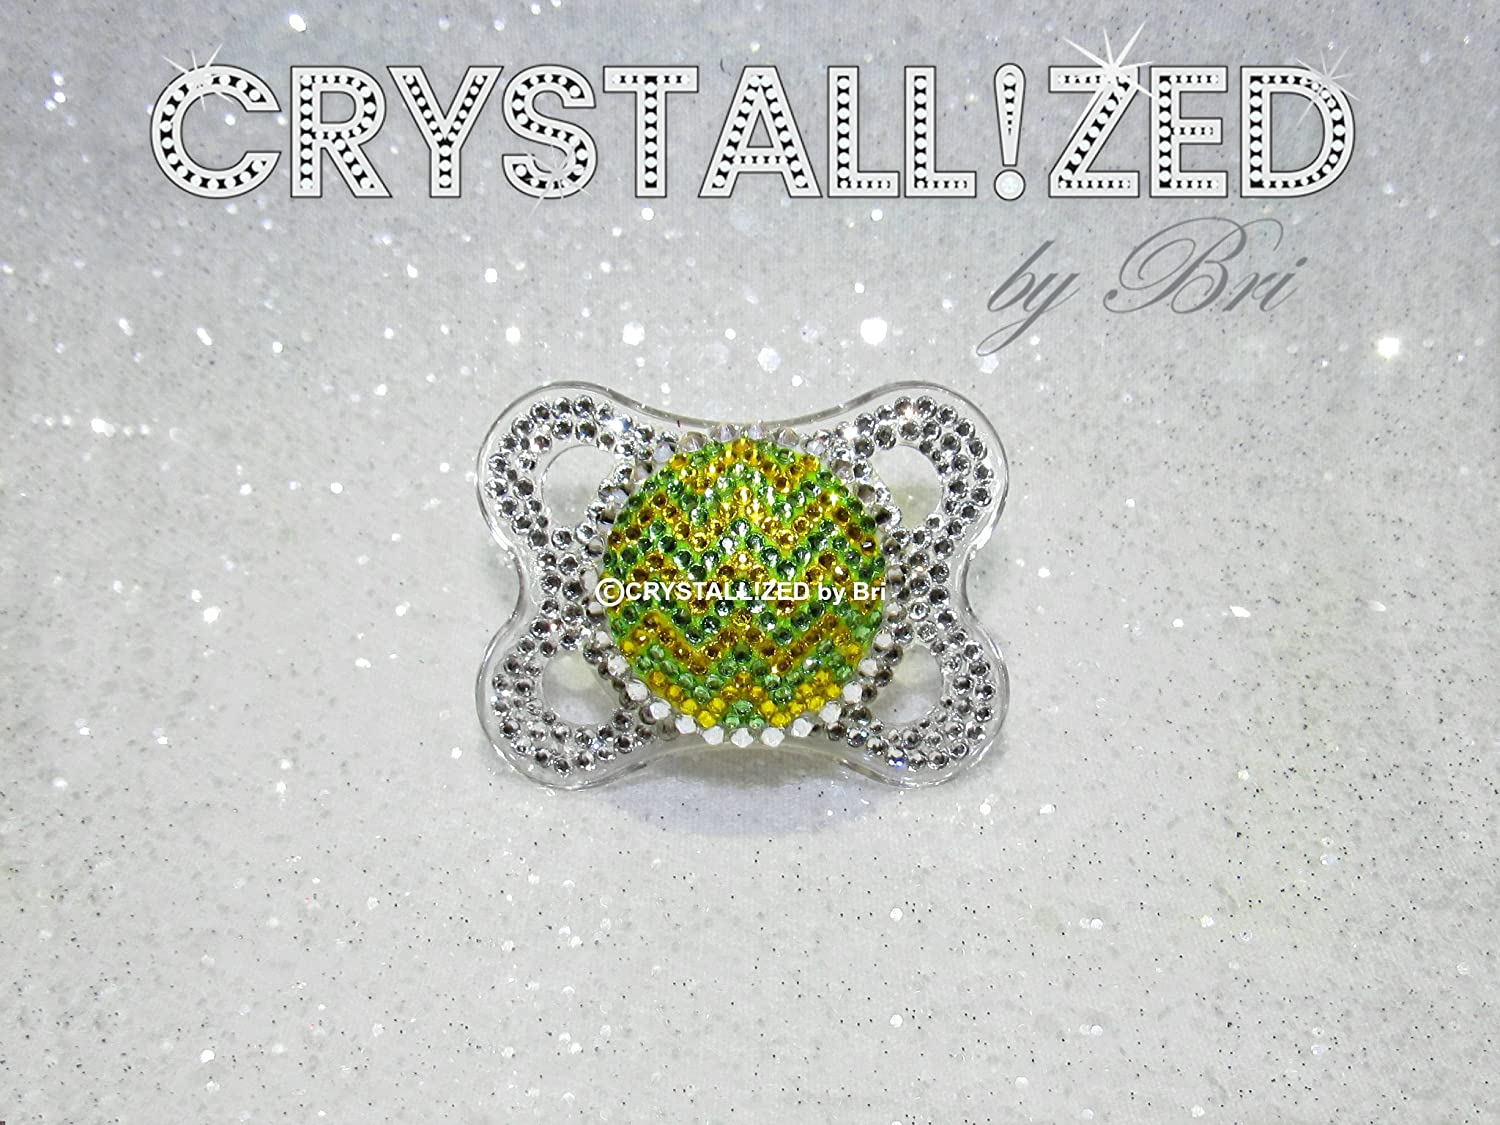 CRYSTALLIZED Yellow Green Zig Zag Baby Pacifier Bling Hand Made with Swarovski Crystals - DECORATION OBJECT ONLY